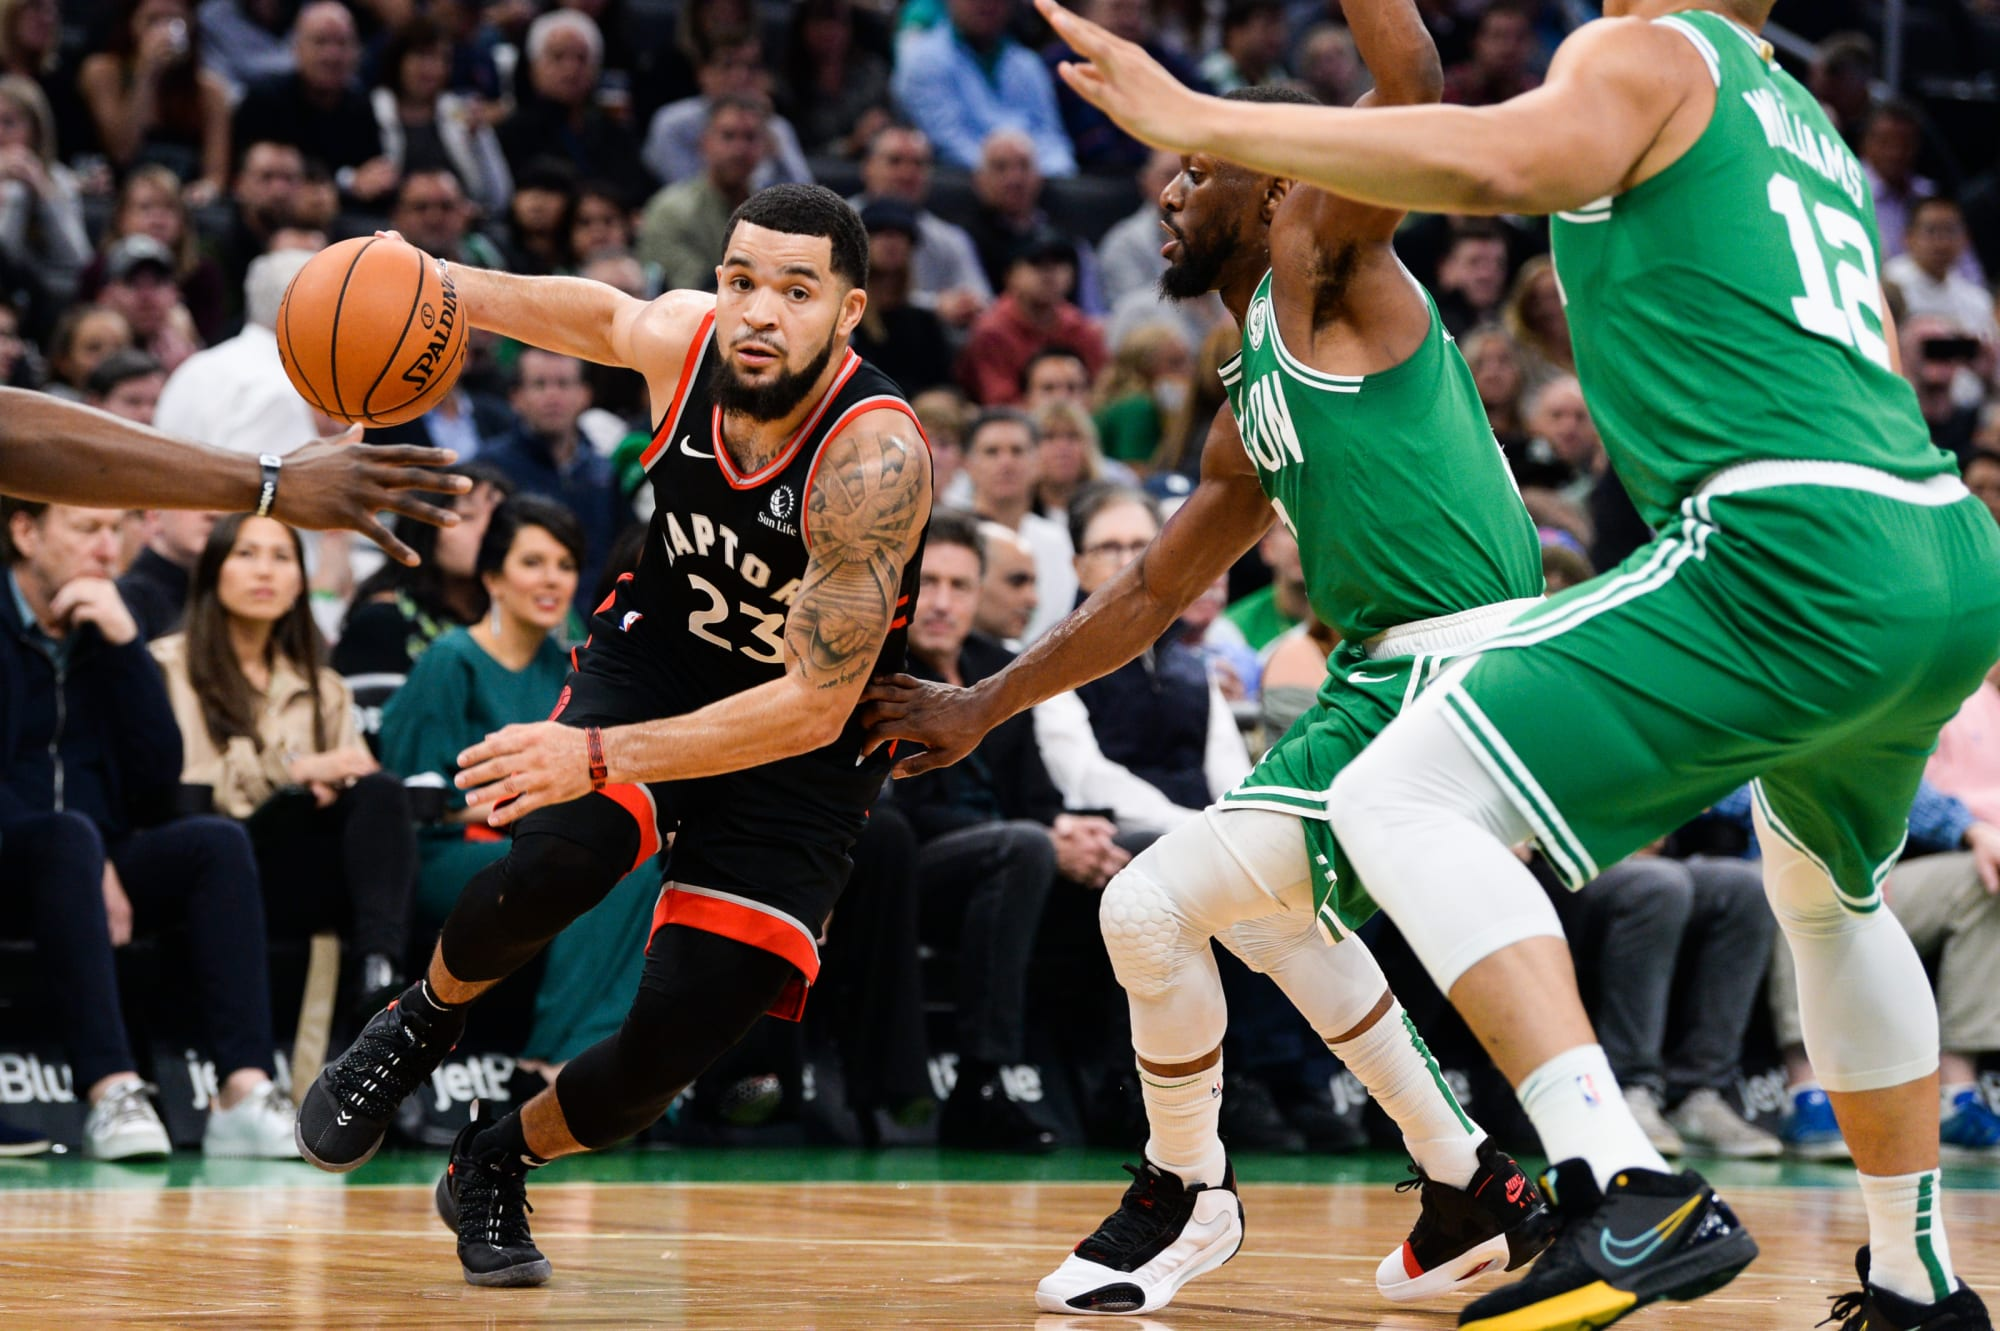 Boston Celtics: the one player in the league Tremont Waters should take notes from